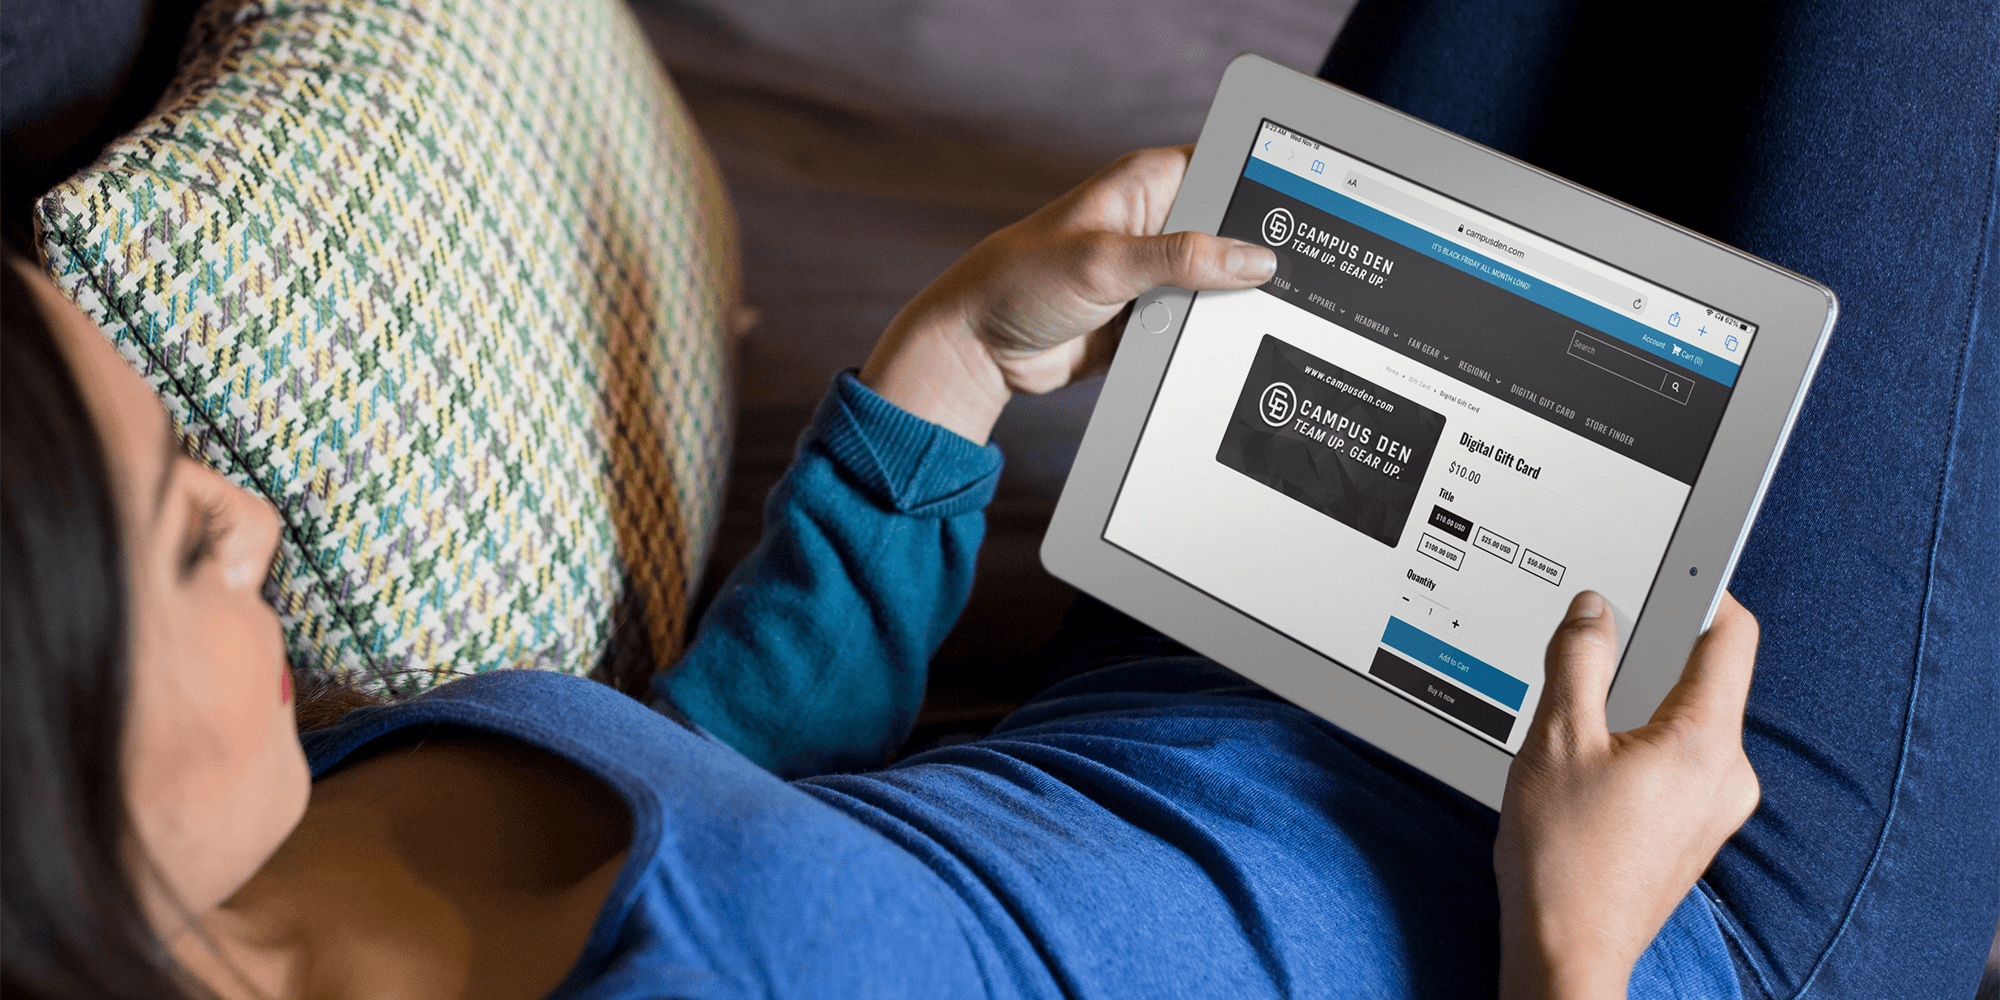 a woman chilling on a couch shopping for a Campus Den giftcard on an ipad.png